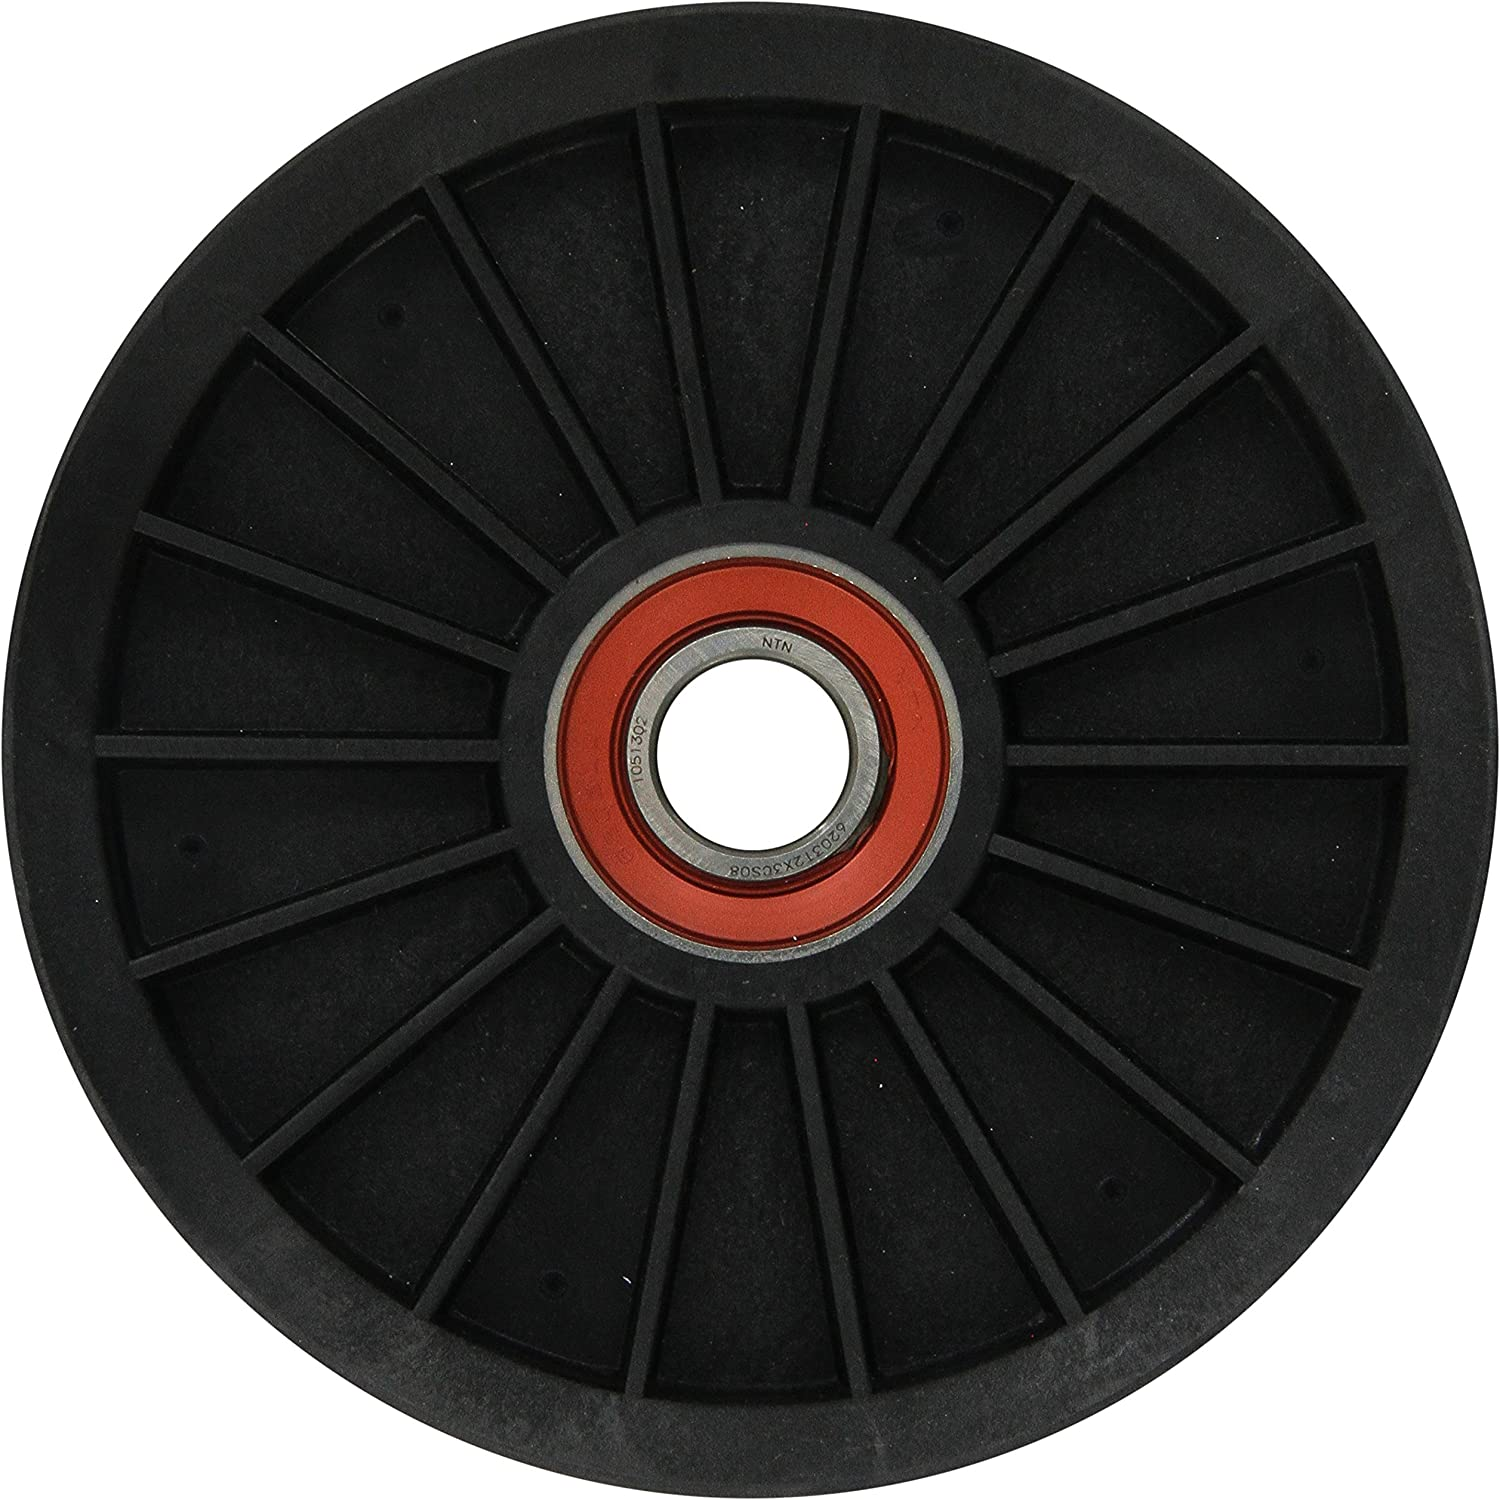 Dayco 89013 Automatic Belt Tensioner